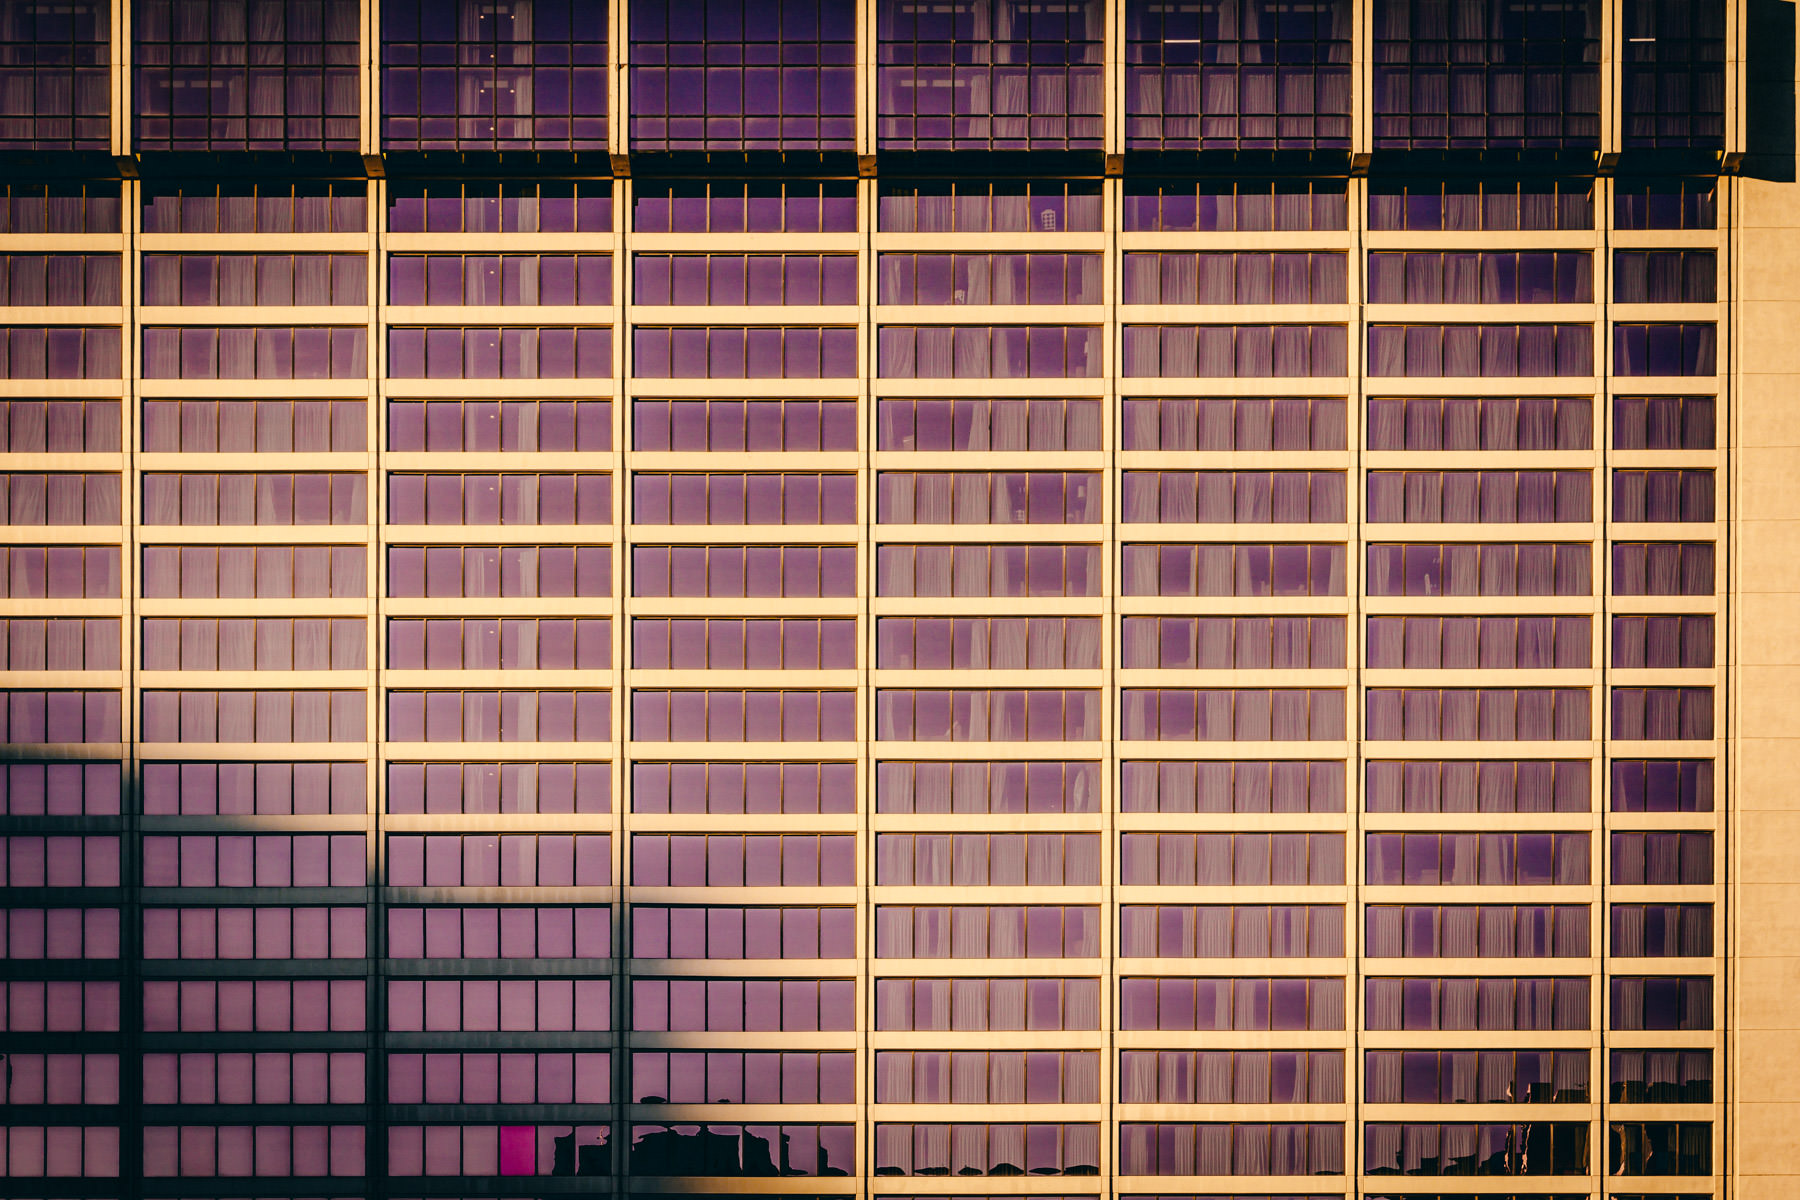 Pink/purple-tinted windows on the façade of Las Vegas' Flamingo Hotel & Casino.